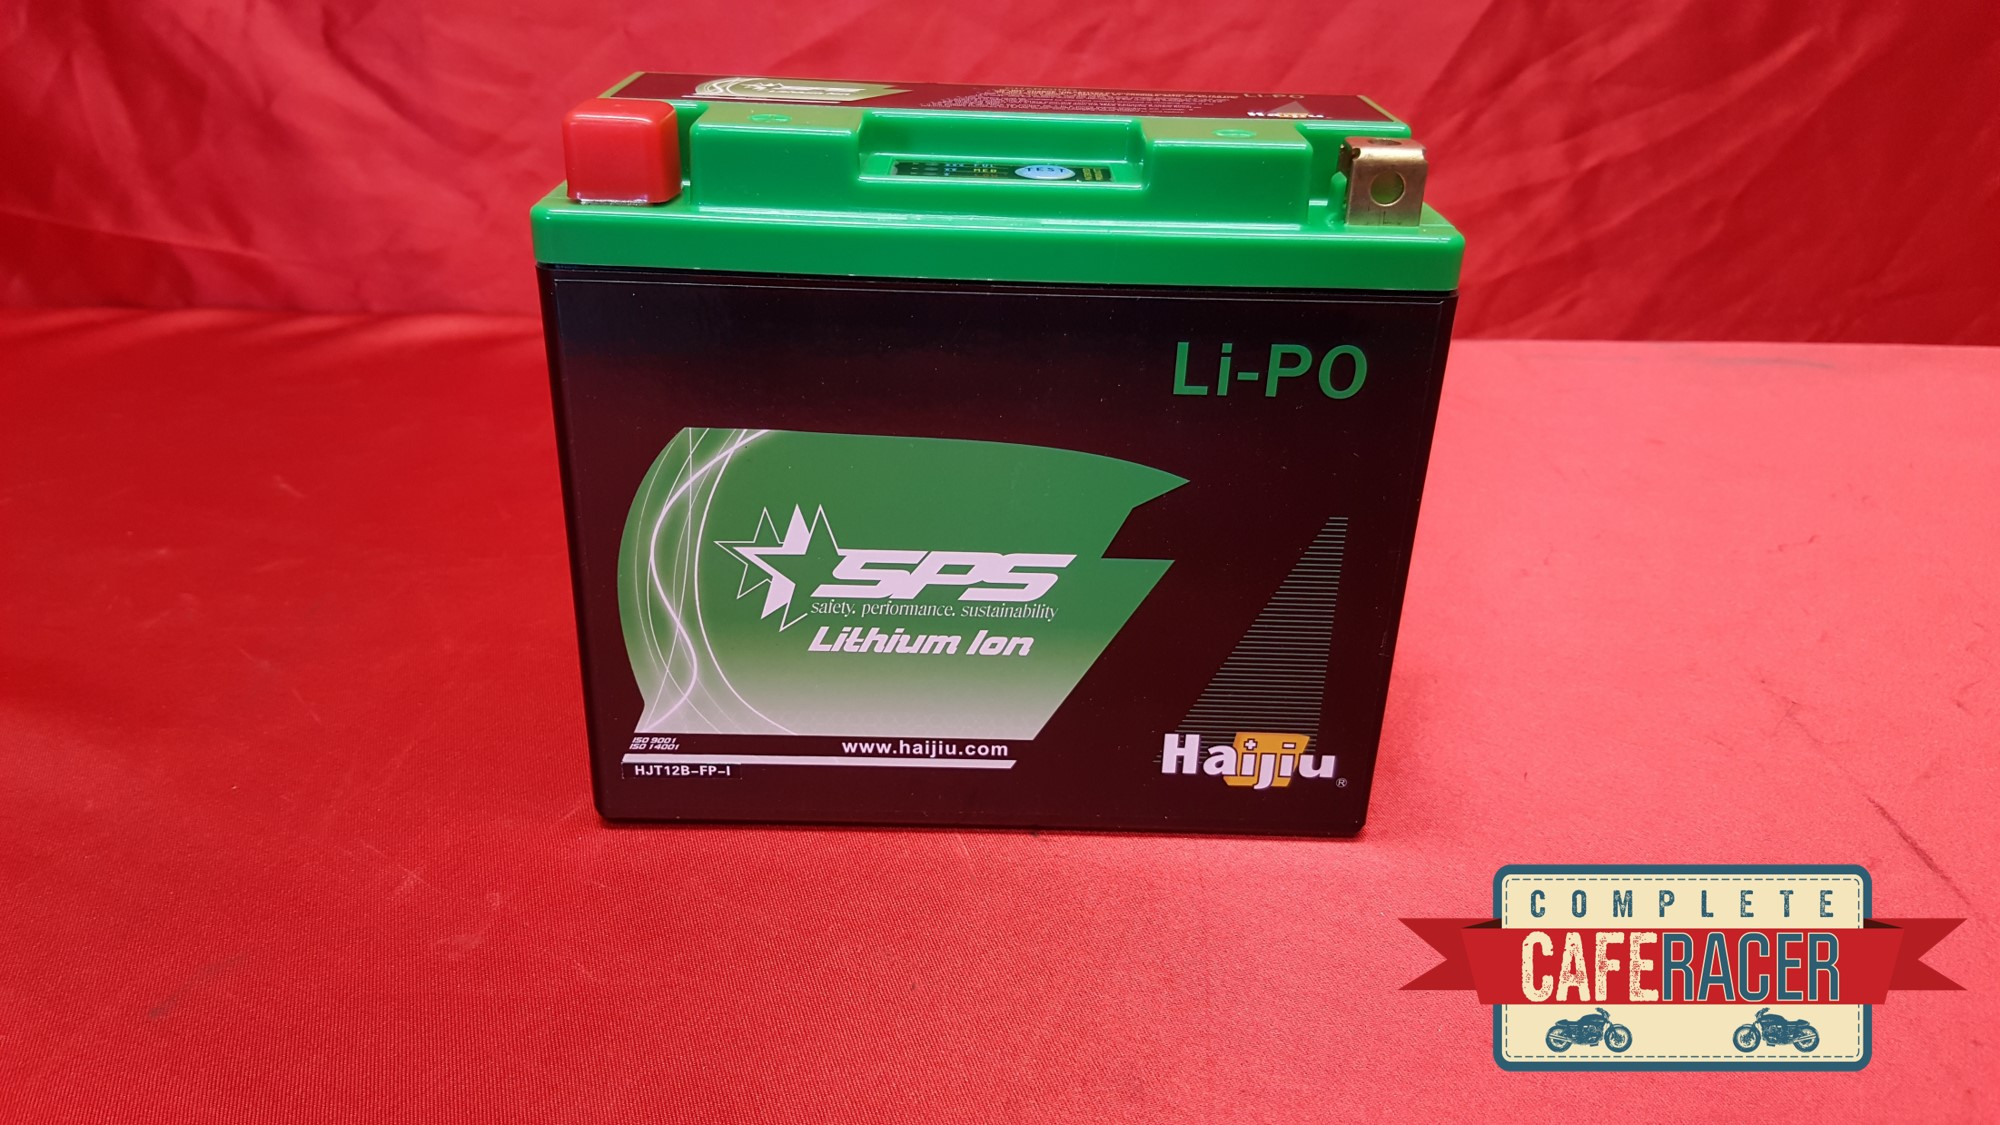 (LG) CAFE RACER LITHIUM ION BATTERY 12V COMPACT LIGHTWEIGHT 10AMP